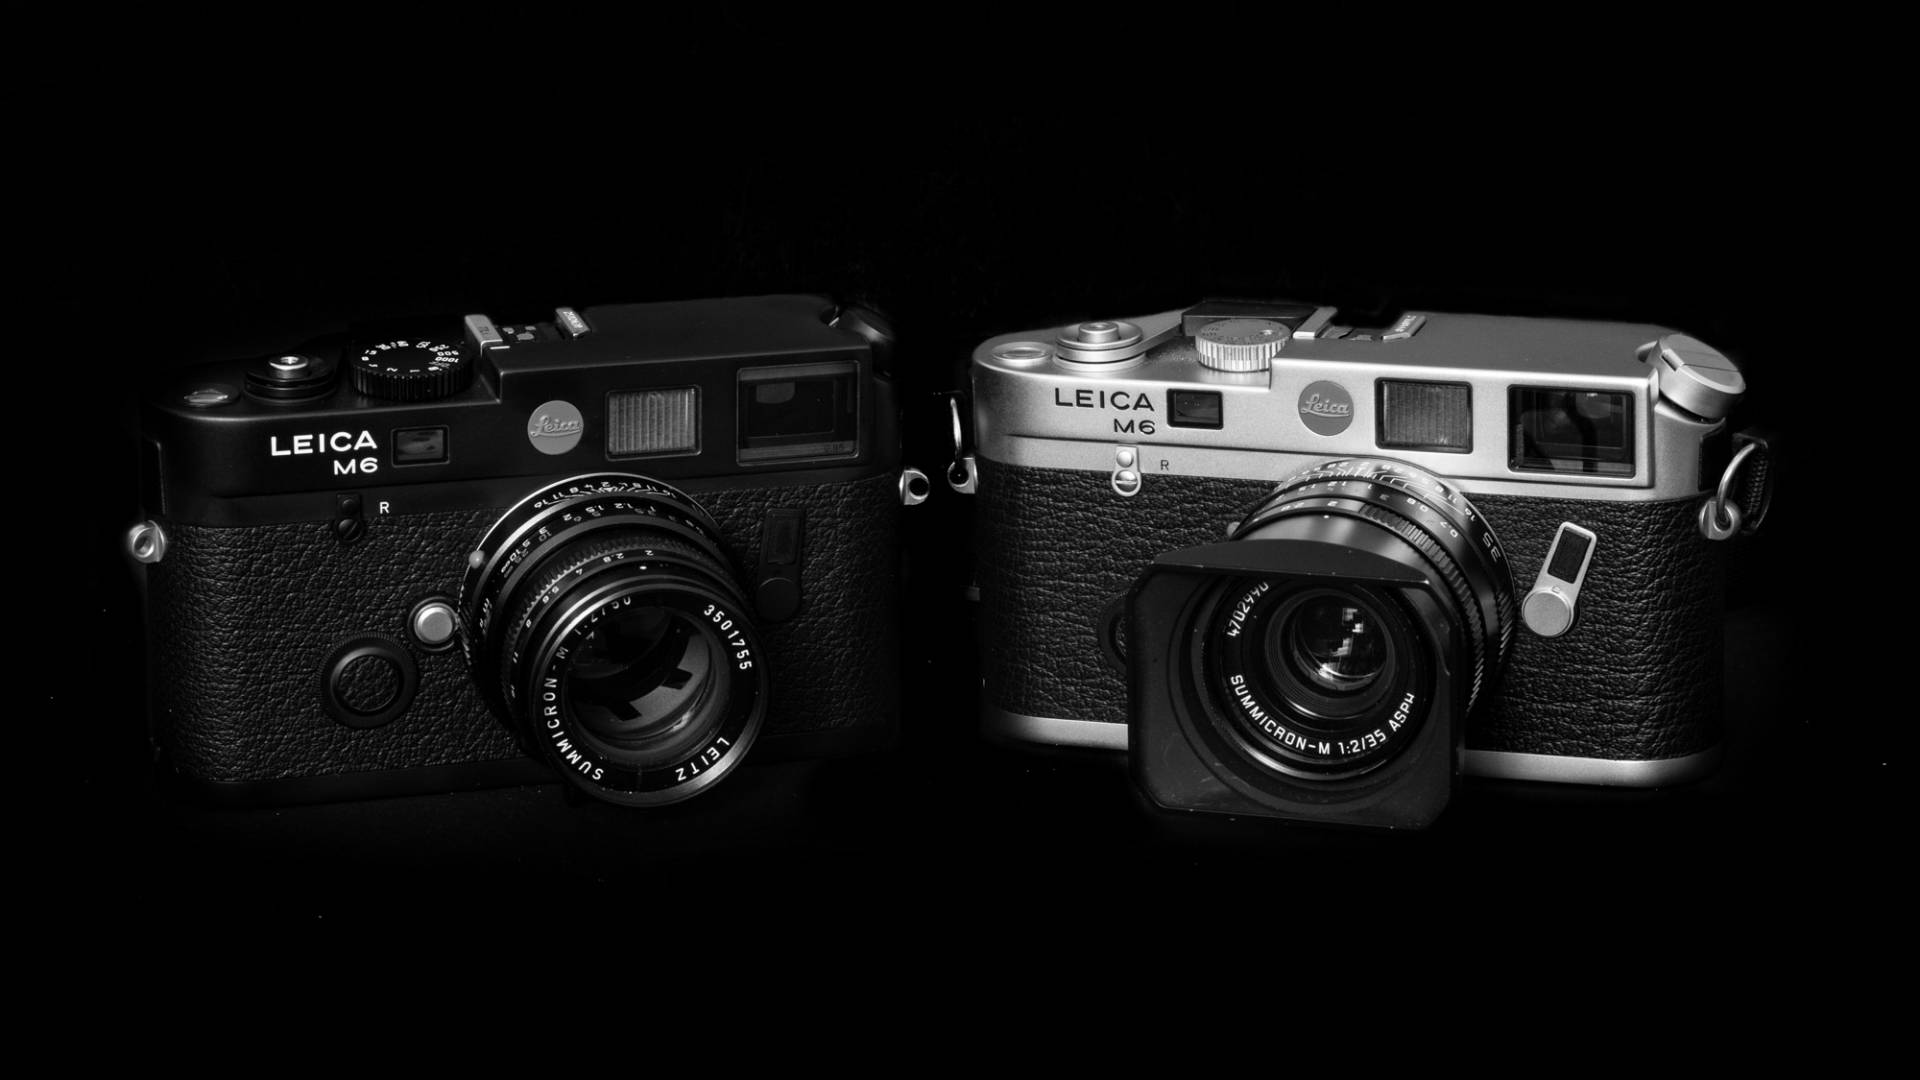 The Leica M6 TTL and M6 Classic will still be around and coveted in decades to come. Yet the advent of technology and higher levels of computational photography will turn cameras into short-lived items of convenience (Image Claus Sassenburg of Messsucherwelt.com  https://www.messsucherwelt.com